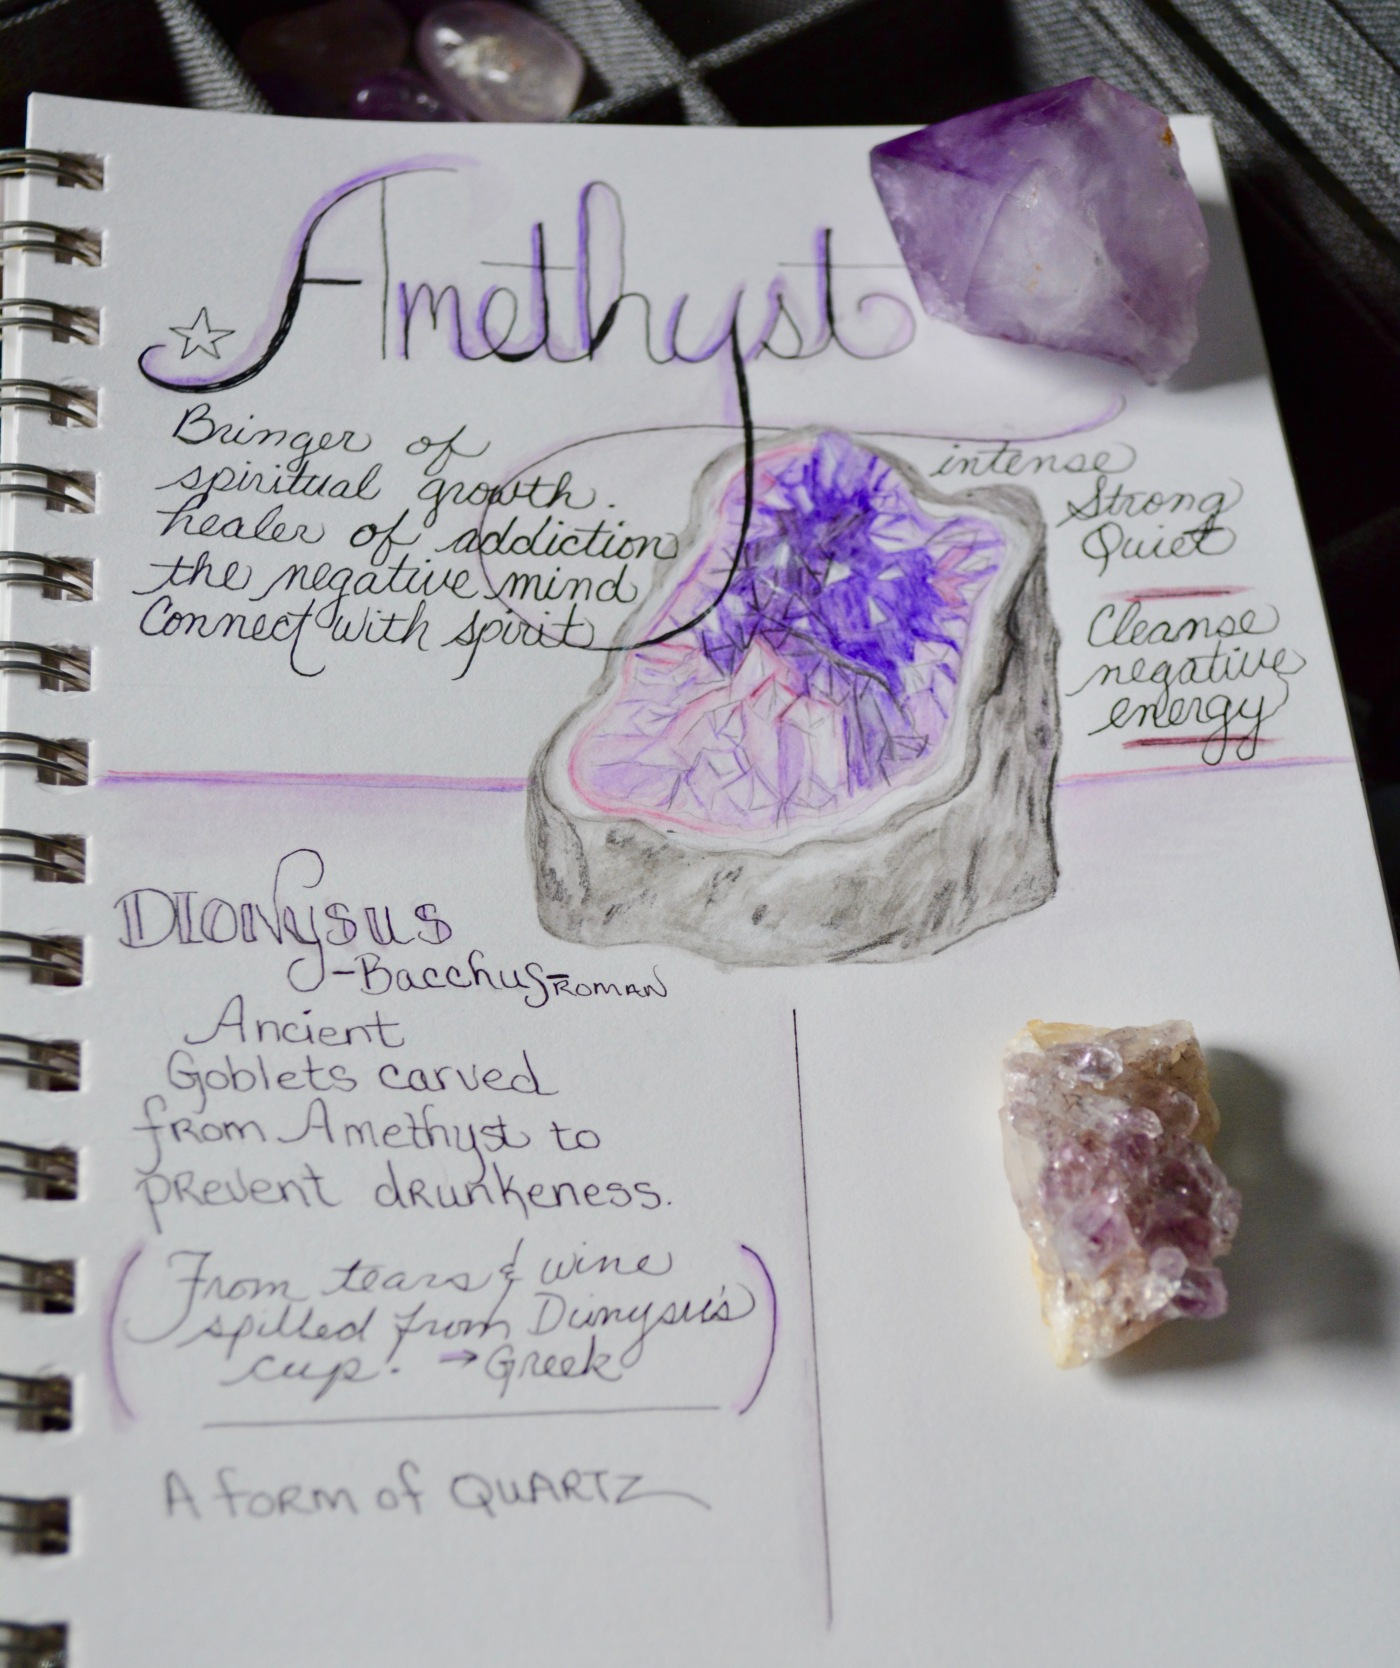 February crystal of the month is amethyst, crystal bringer of spiritual growth.